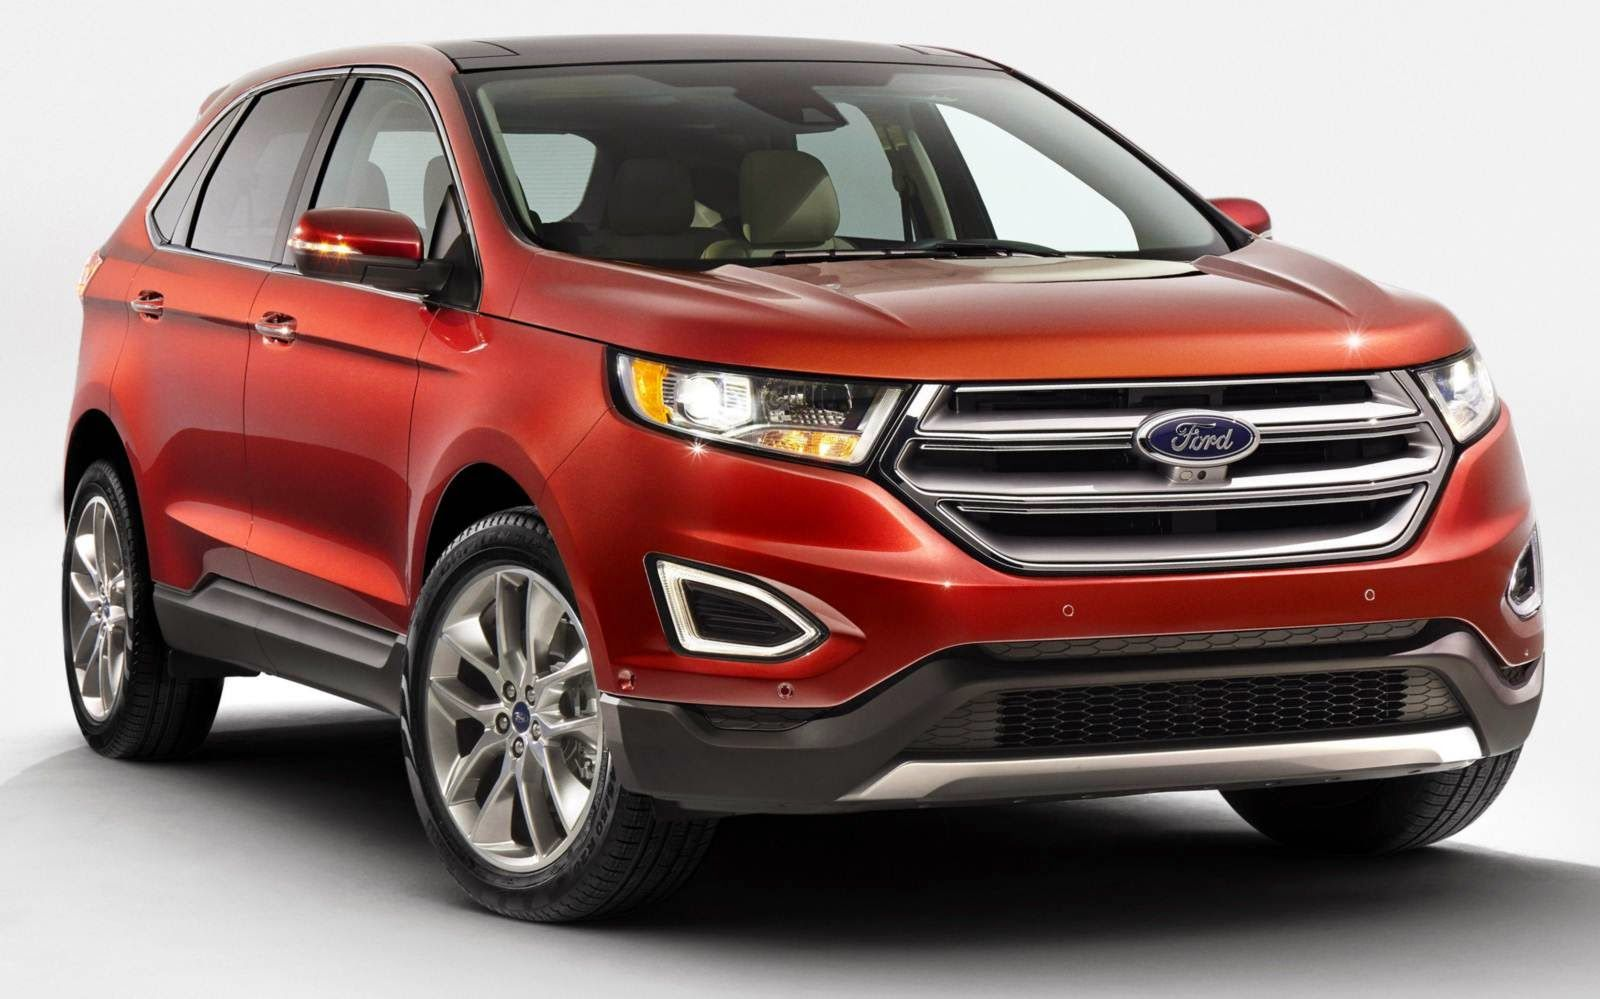 Pin By Kirsten Galvin On Cars Ford Edge Ford Edge Suv Ford Suv